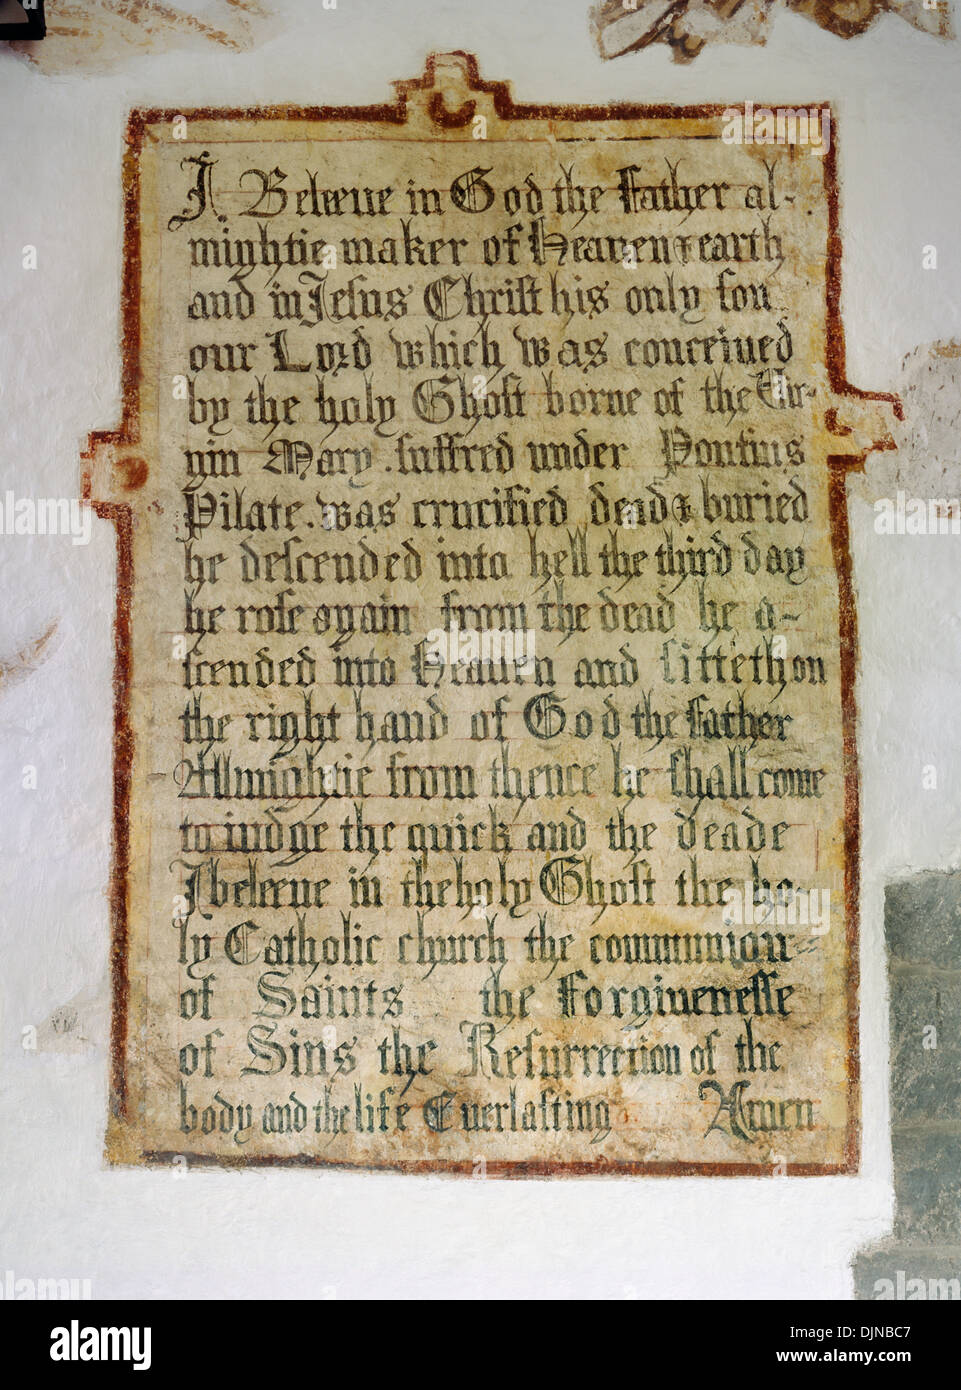 Text of the Apostles' Creed (C4th statement of Christian belief) painted on N wall of the nave of St Issui's Church, Partrishow, Powys: 1662 version. - Stock Image